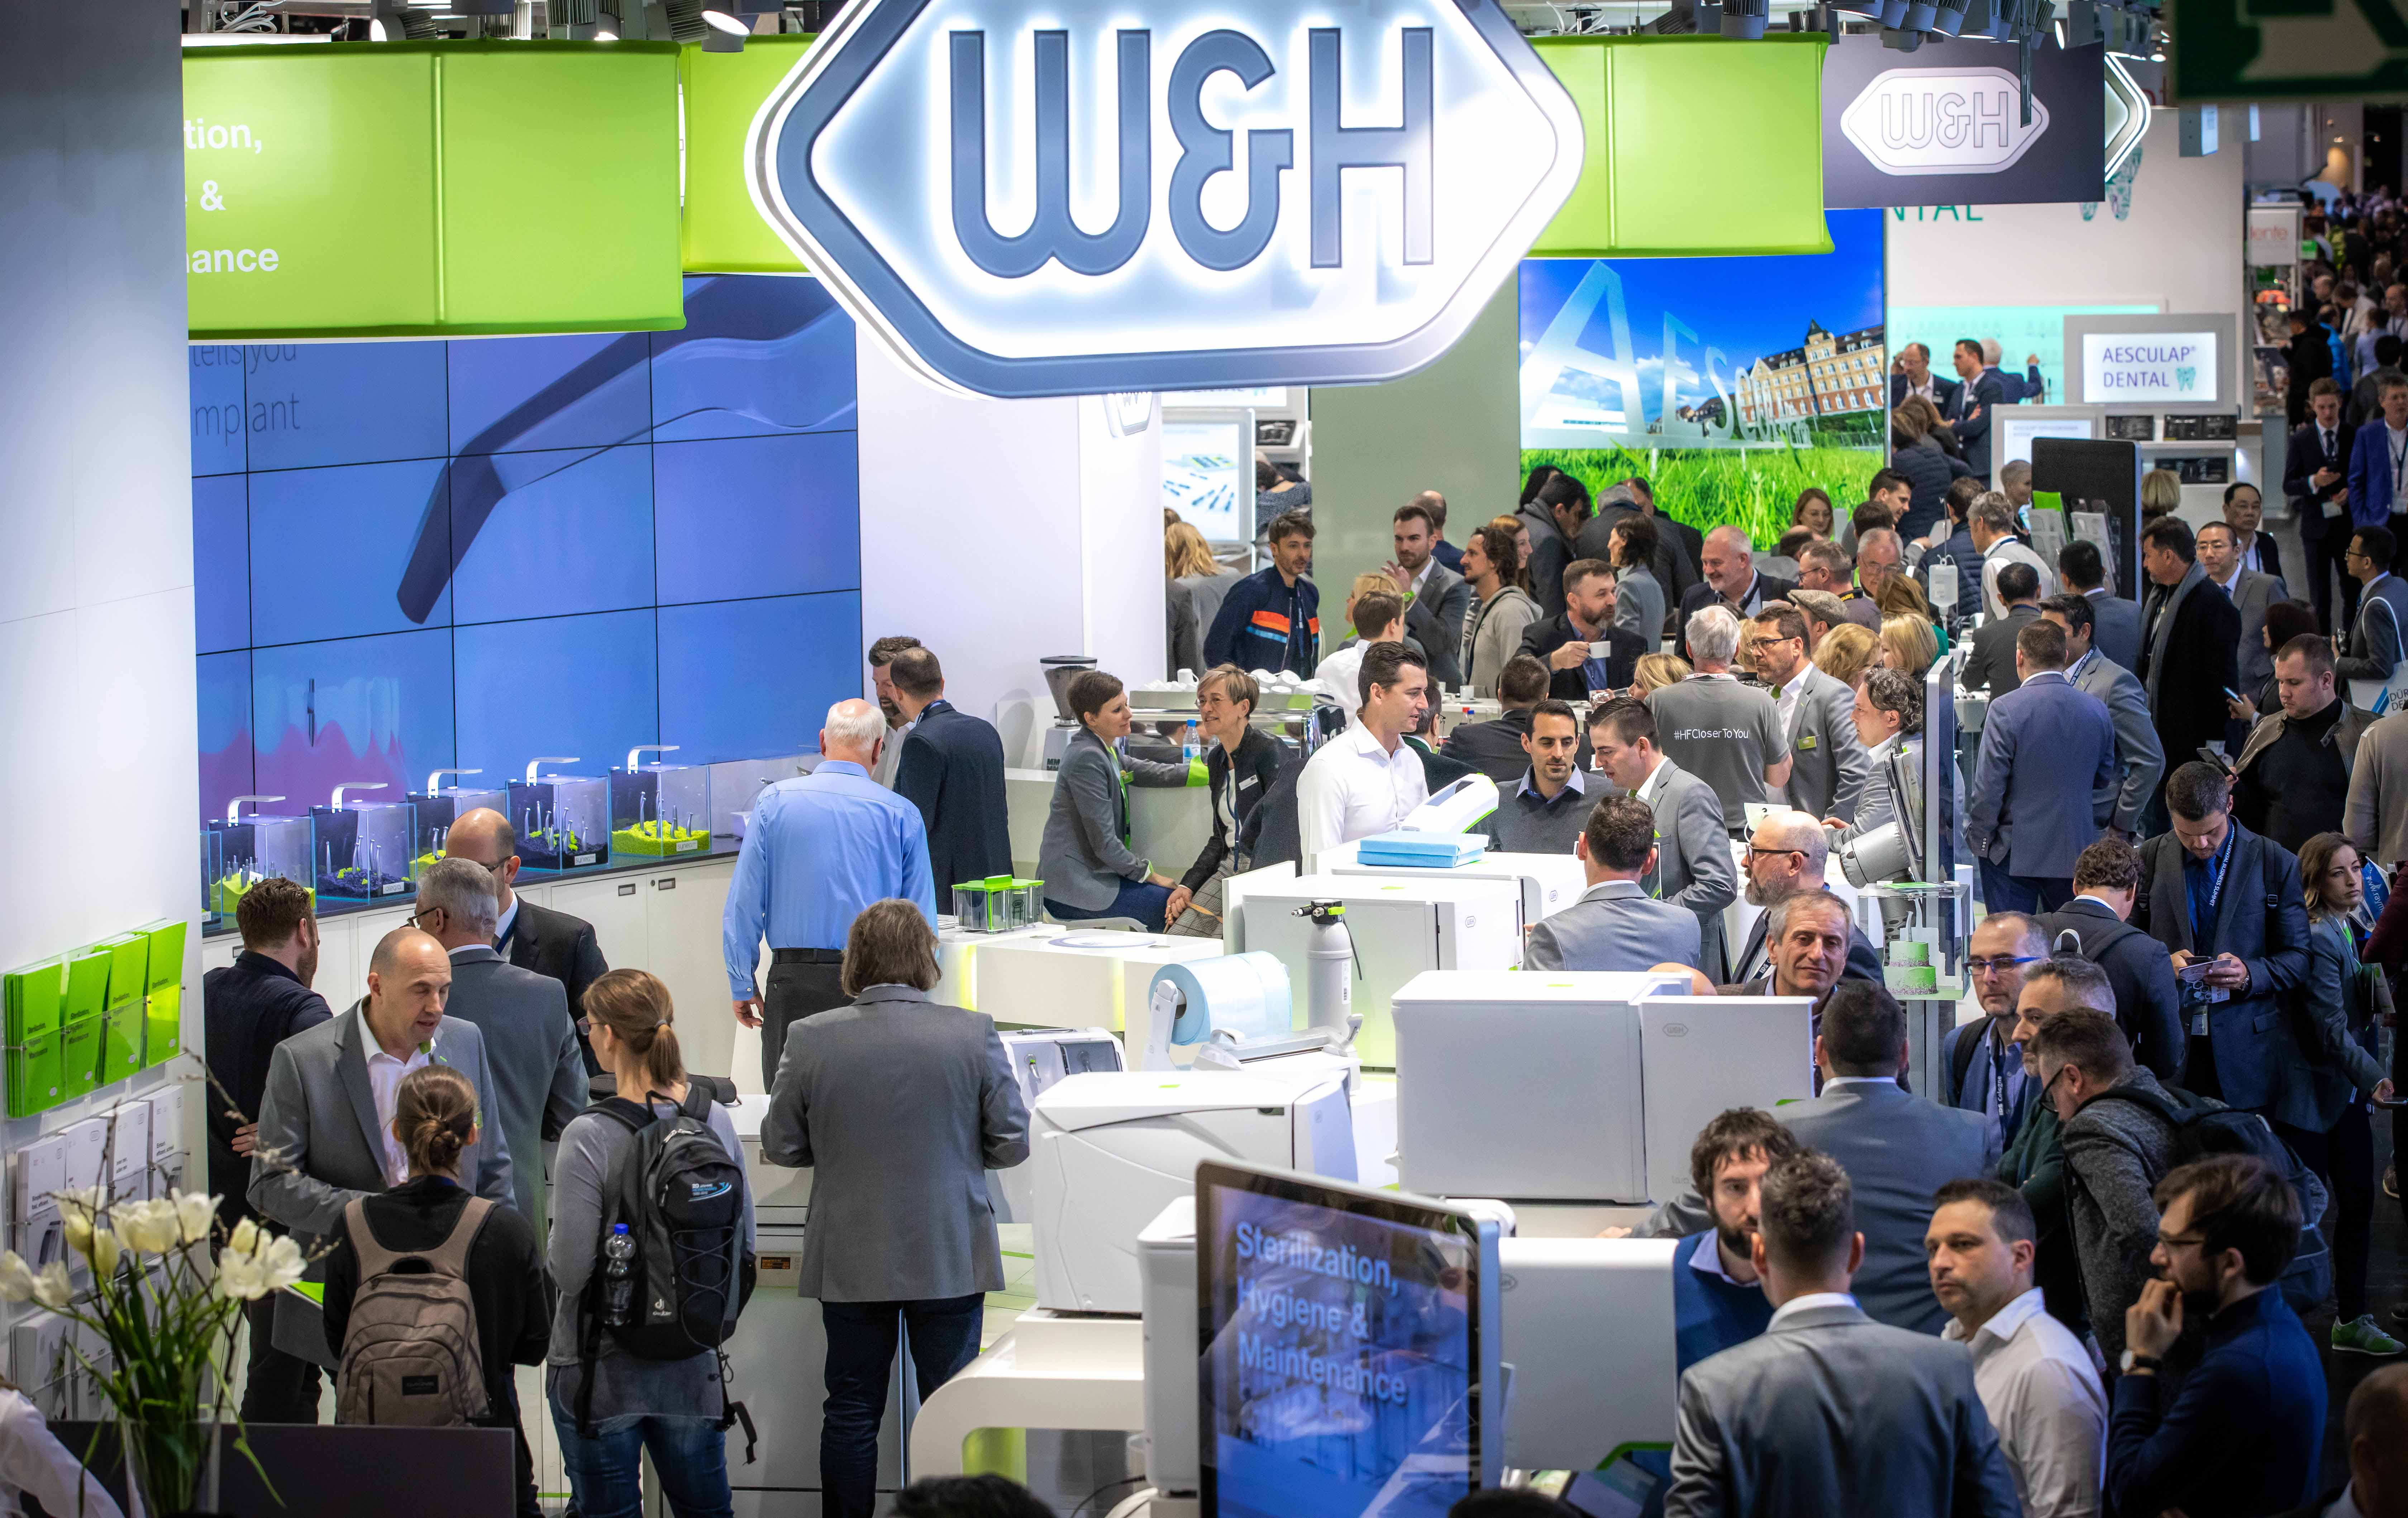 The new look and feel of the W&H trade fair booth impresses trade visitors.